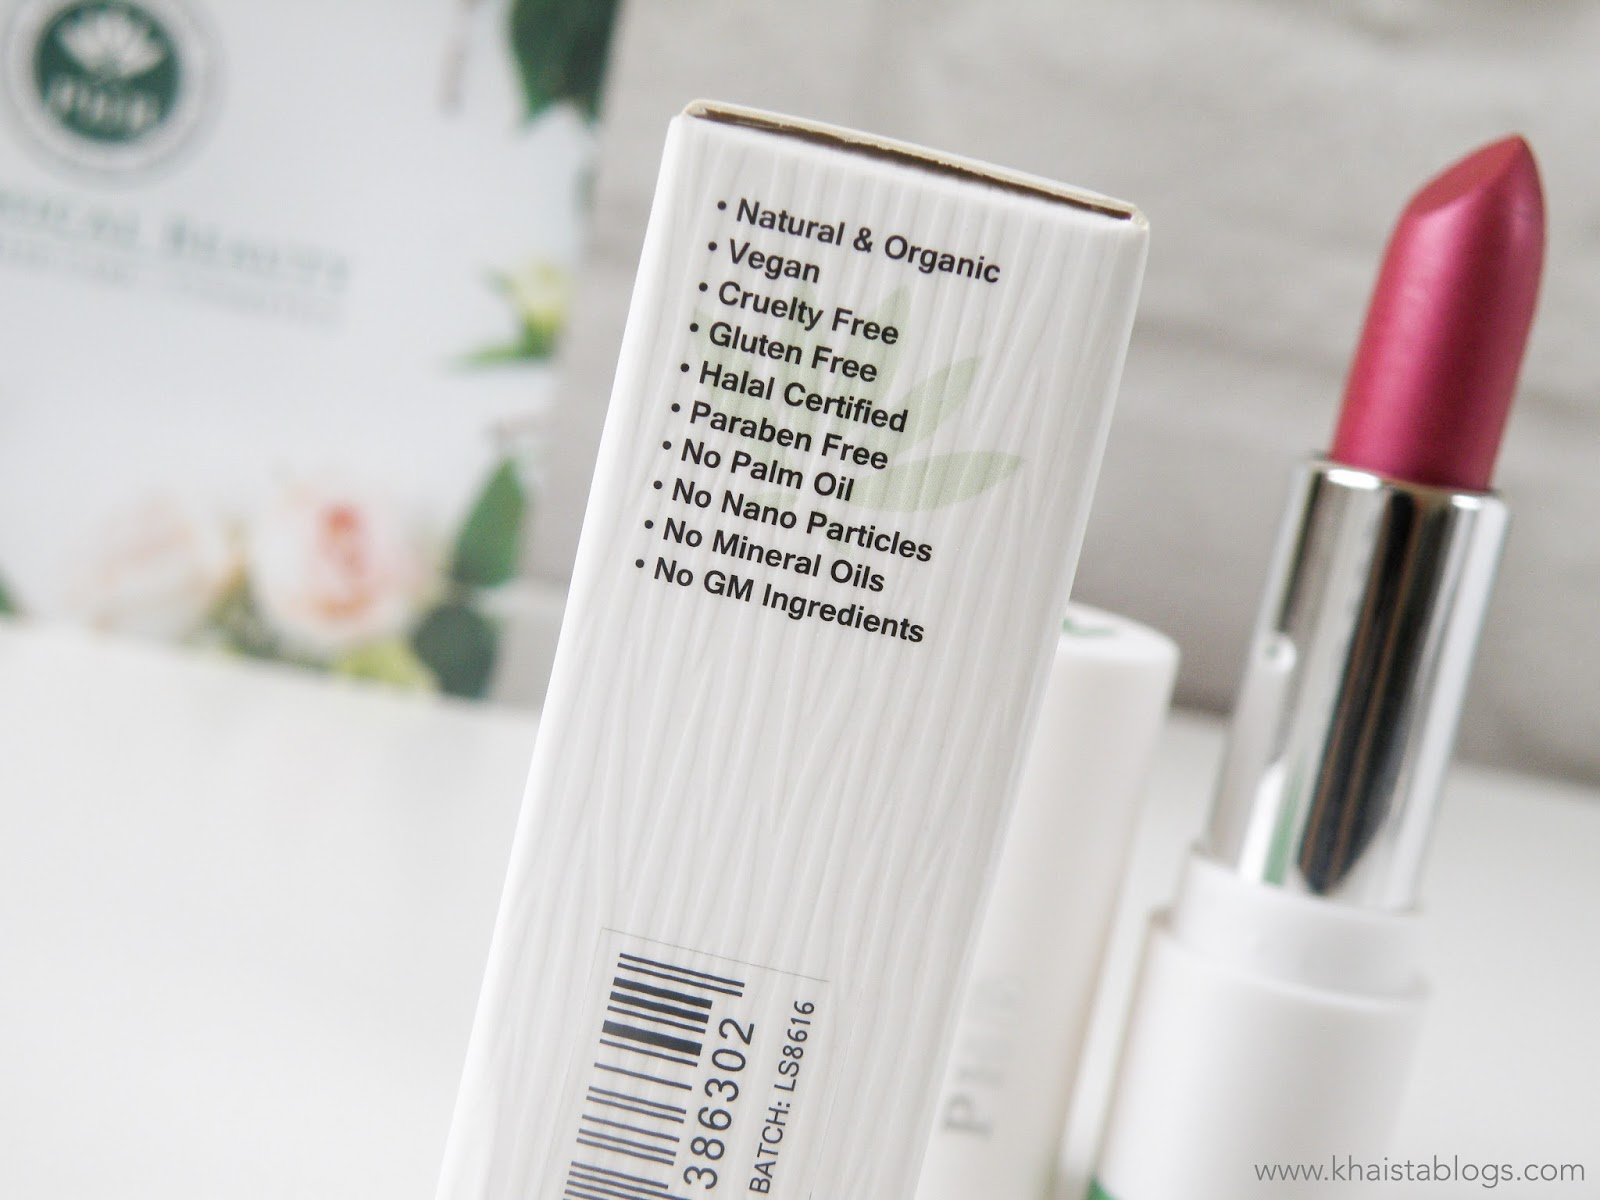 phb-beauty-lipsticks-raspberry-review